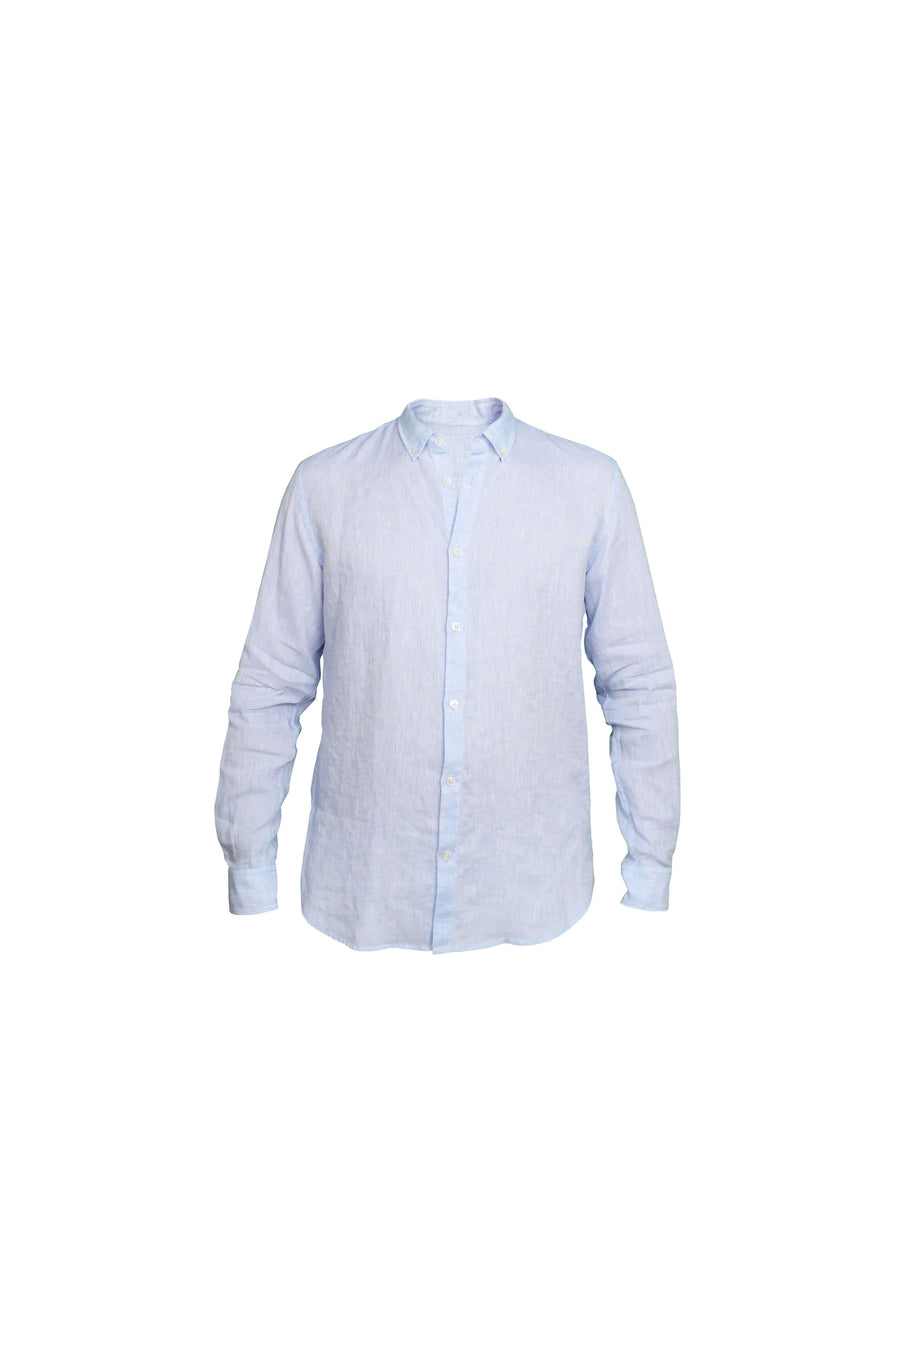 Faros Light Blue Linen Shirt - FAROS LINEN